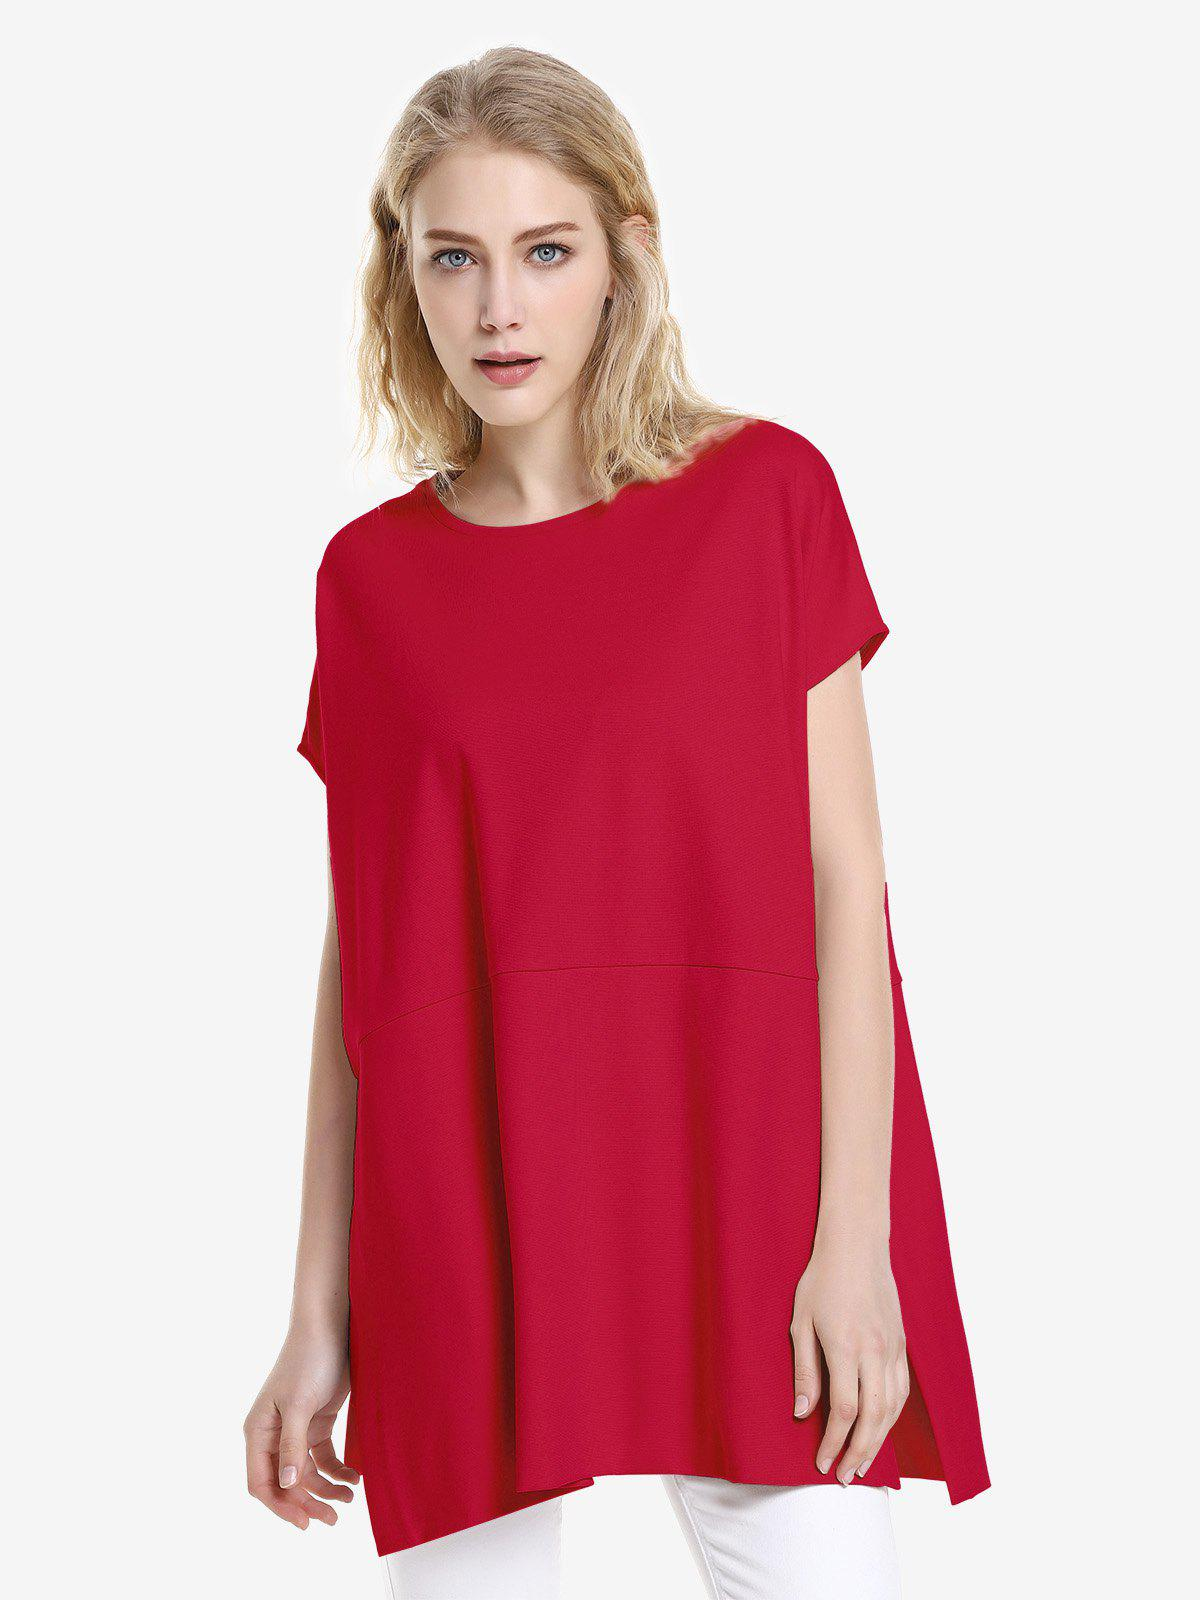 ZAN.STYLE Drop Shoulder Sleeve Top - RED XL